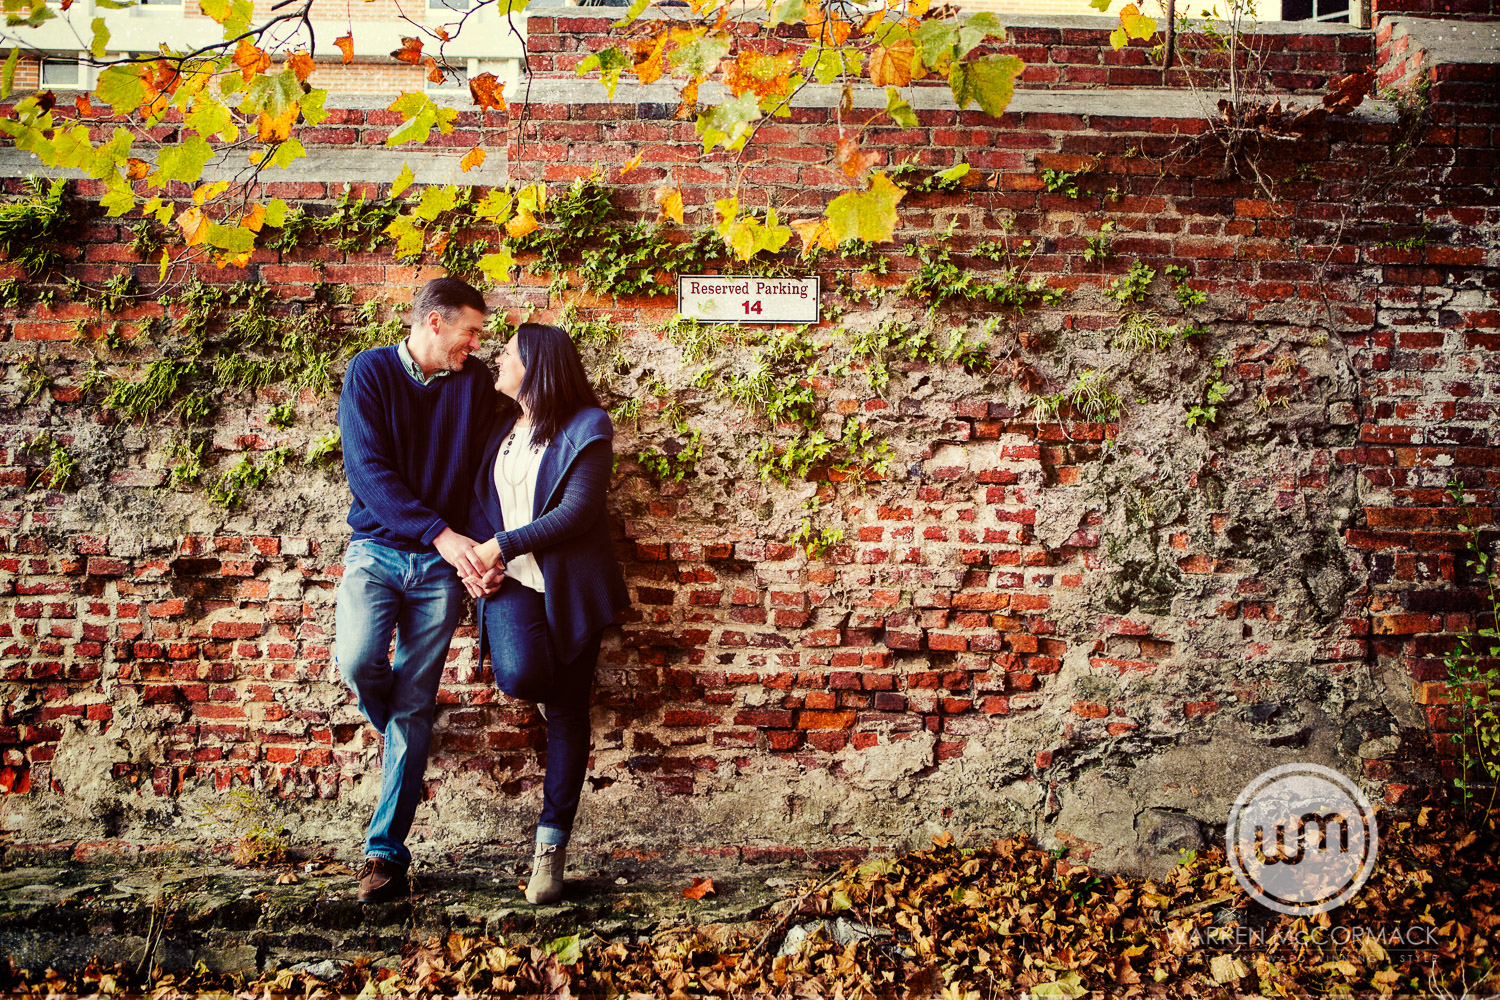 wilmington_engagement_photographer_0007.jpg